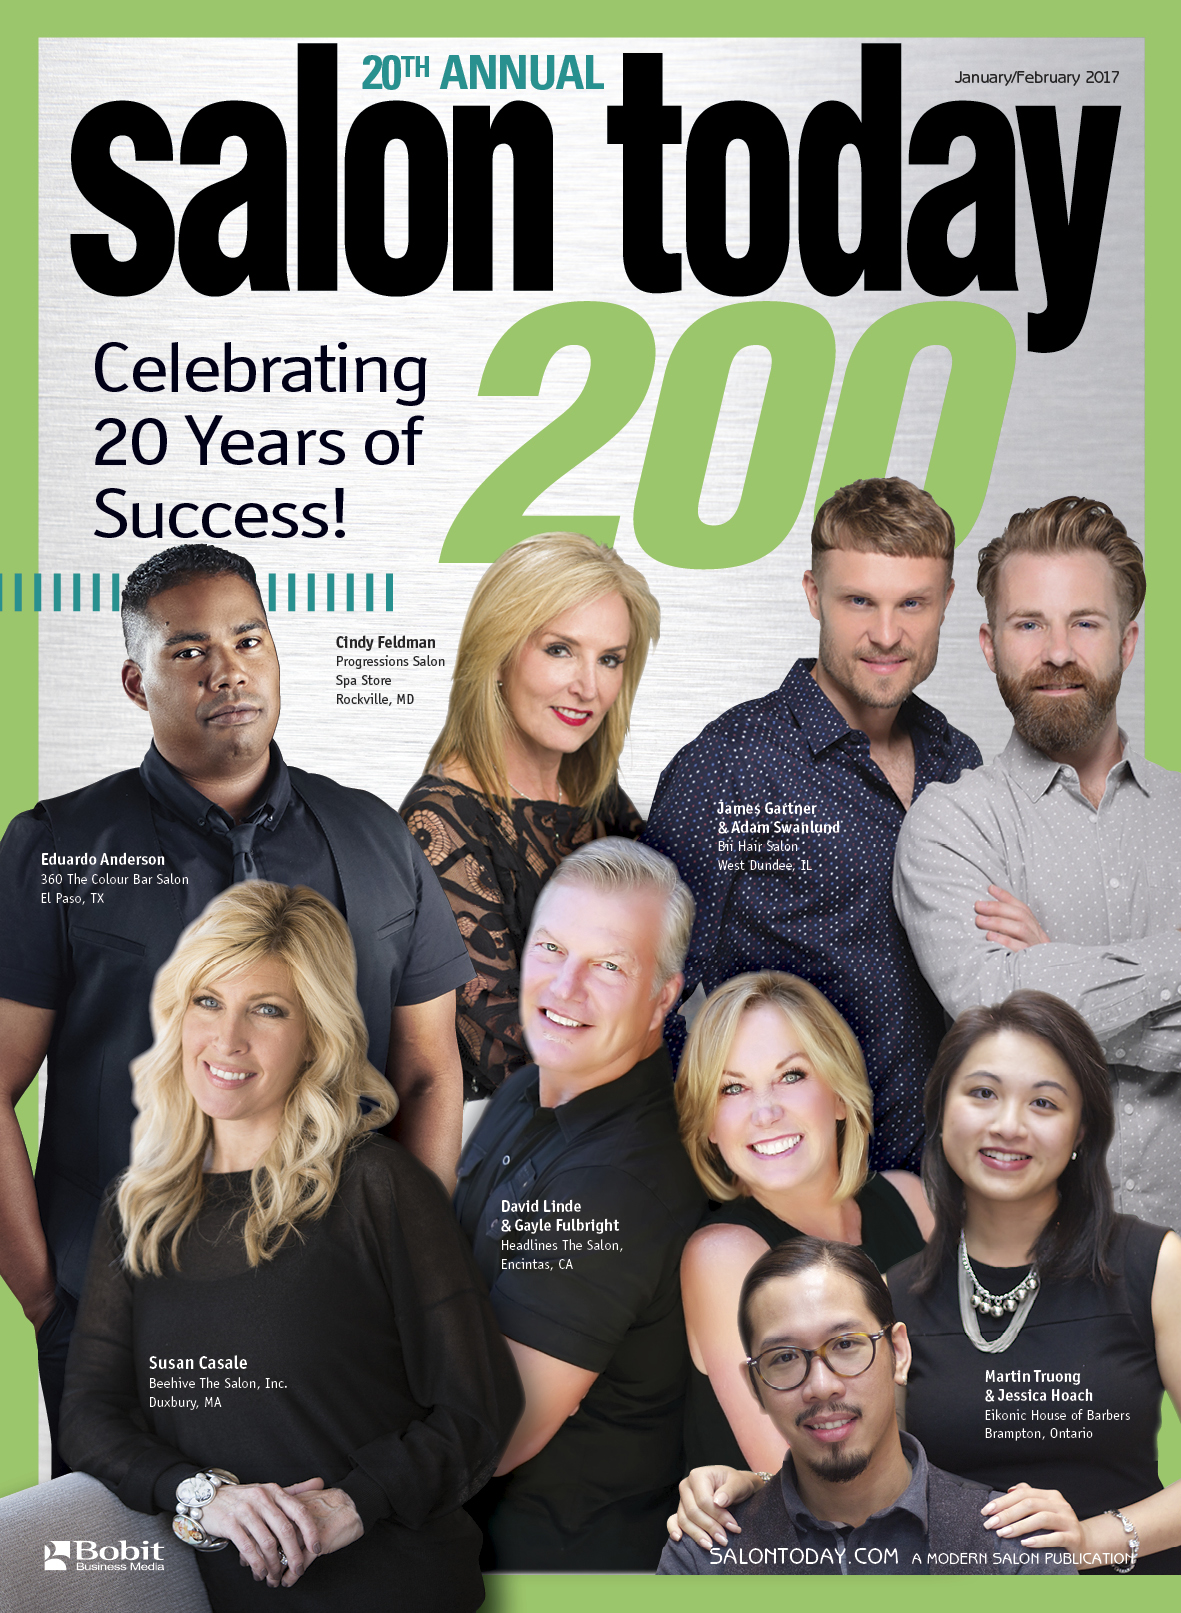 Salon Today 200: 20 Years of Shining a Spotlight on Salon Success